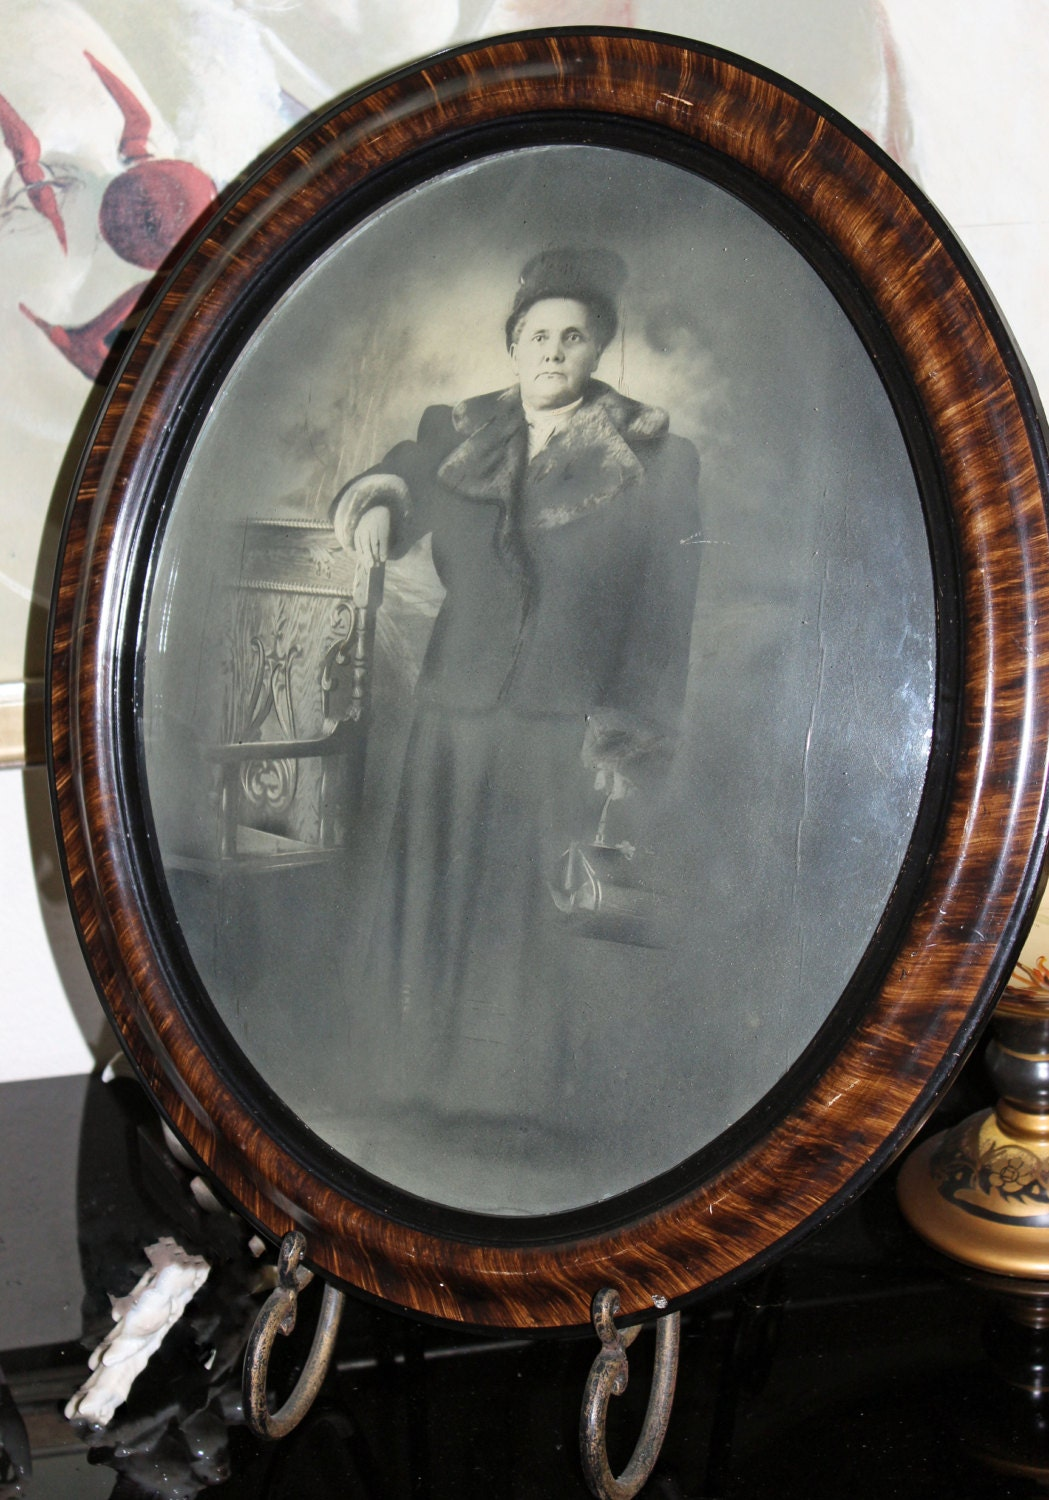 Oval frame convex glass bubble glass 1920s wood oval frame black sold by pastthatlasts jeuxipadfo Image collections